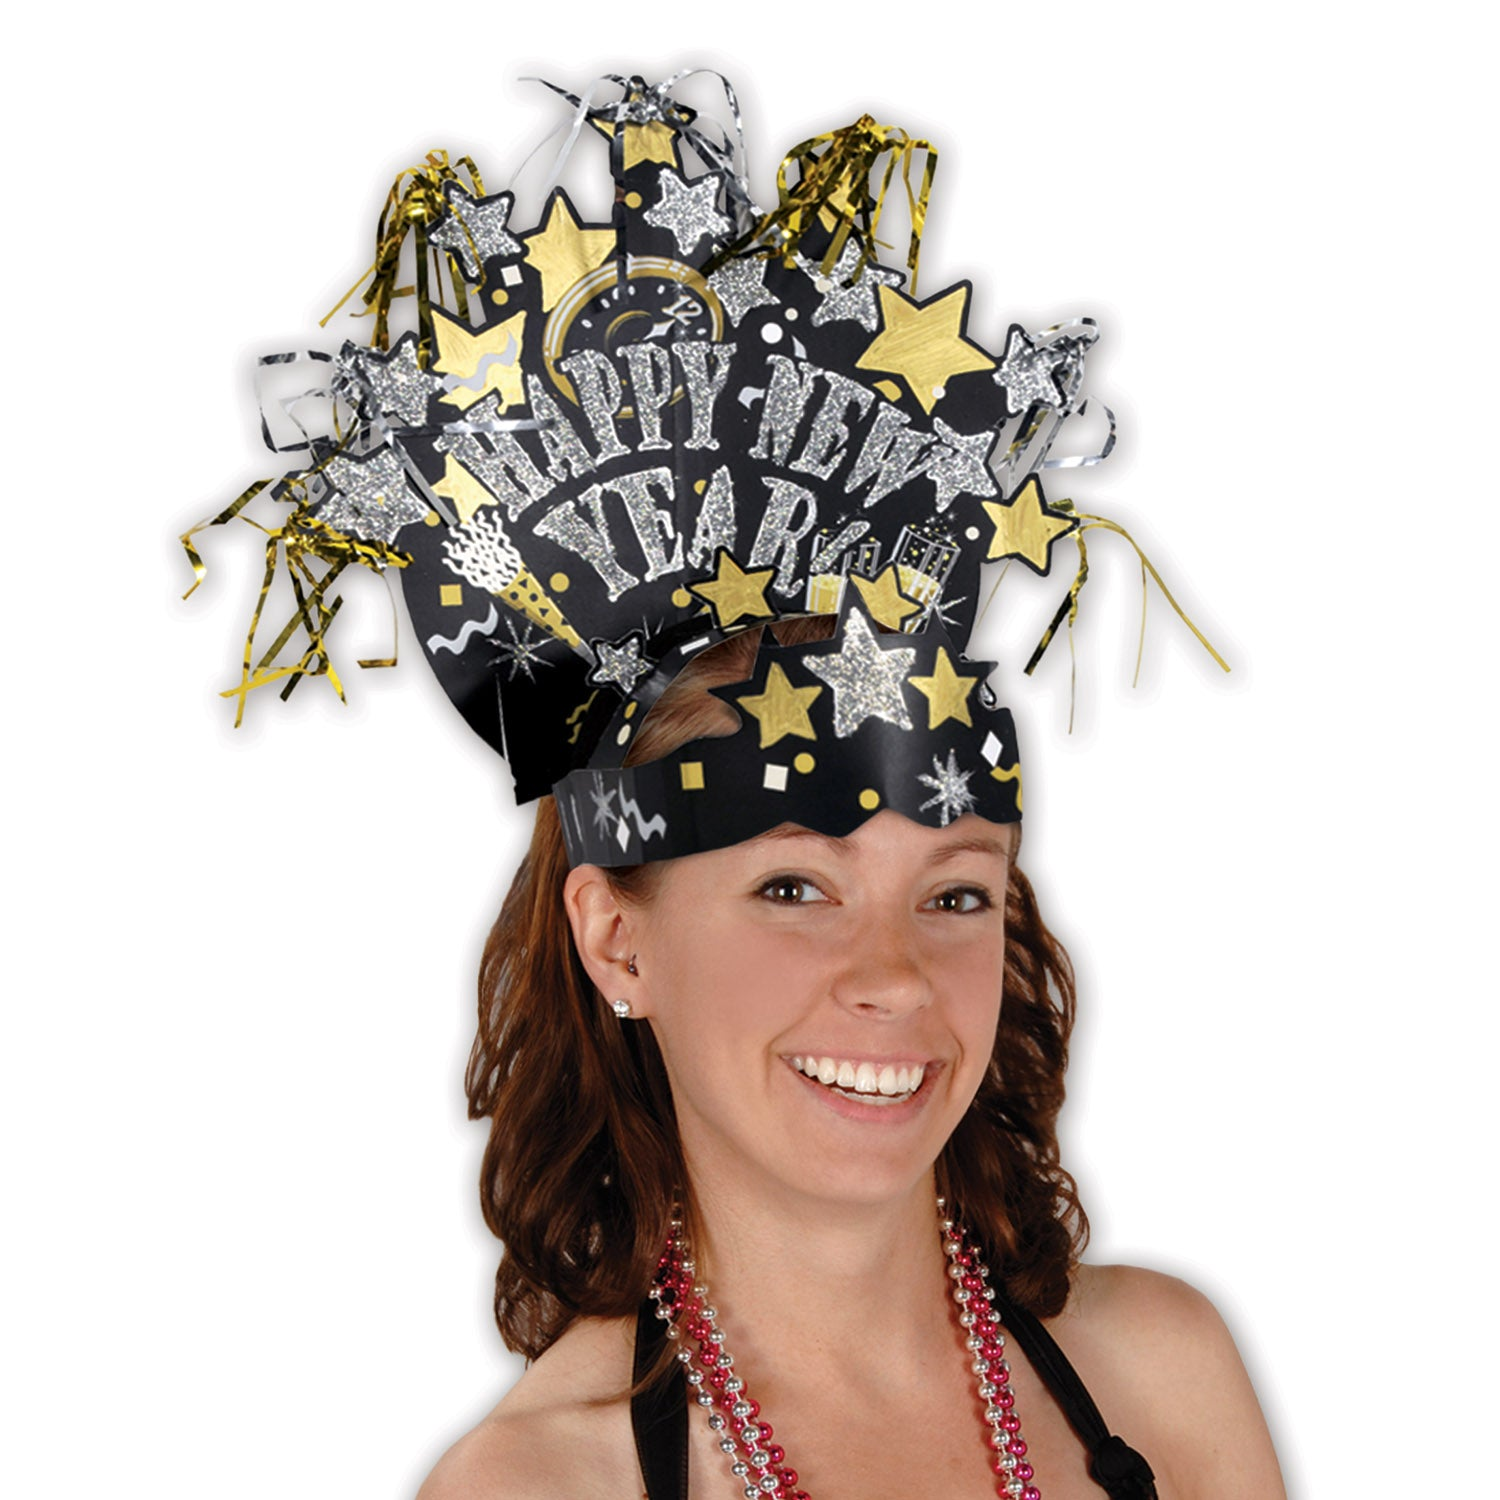 Glittered New Year Headdress by Beistle - New Year's Eve Theme Decorations